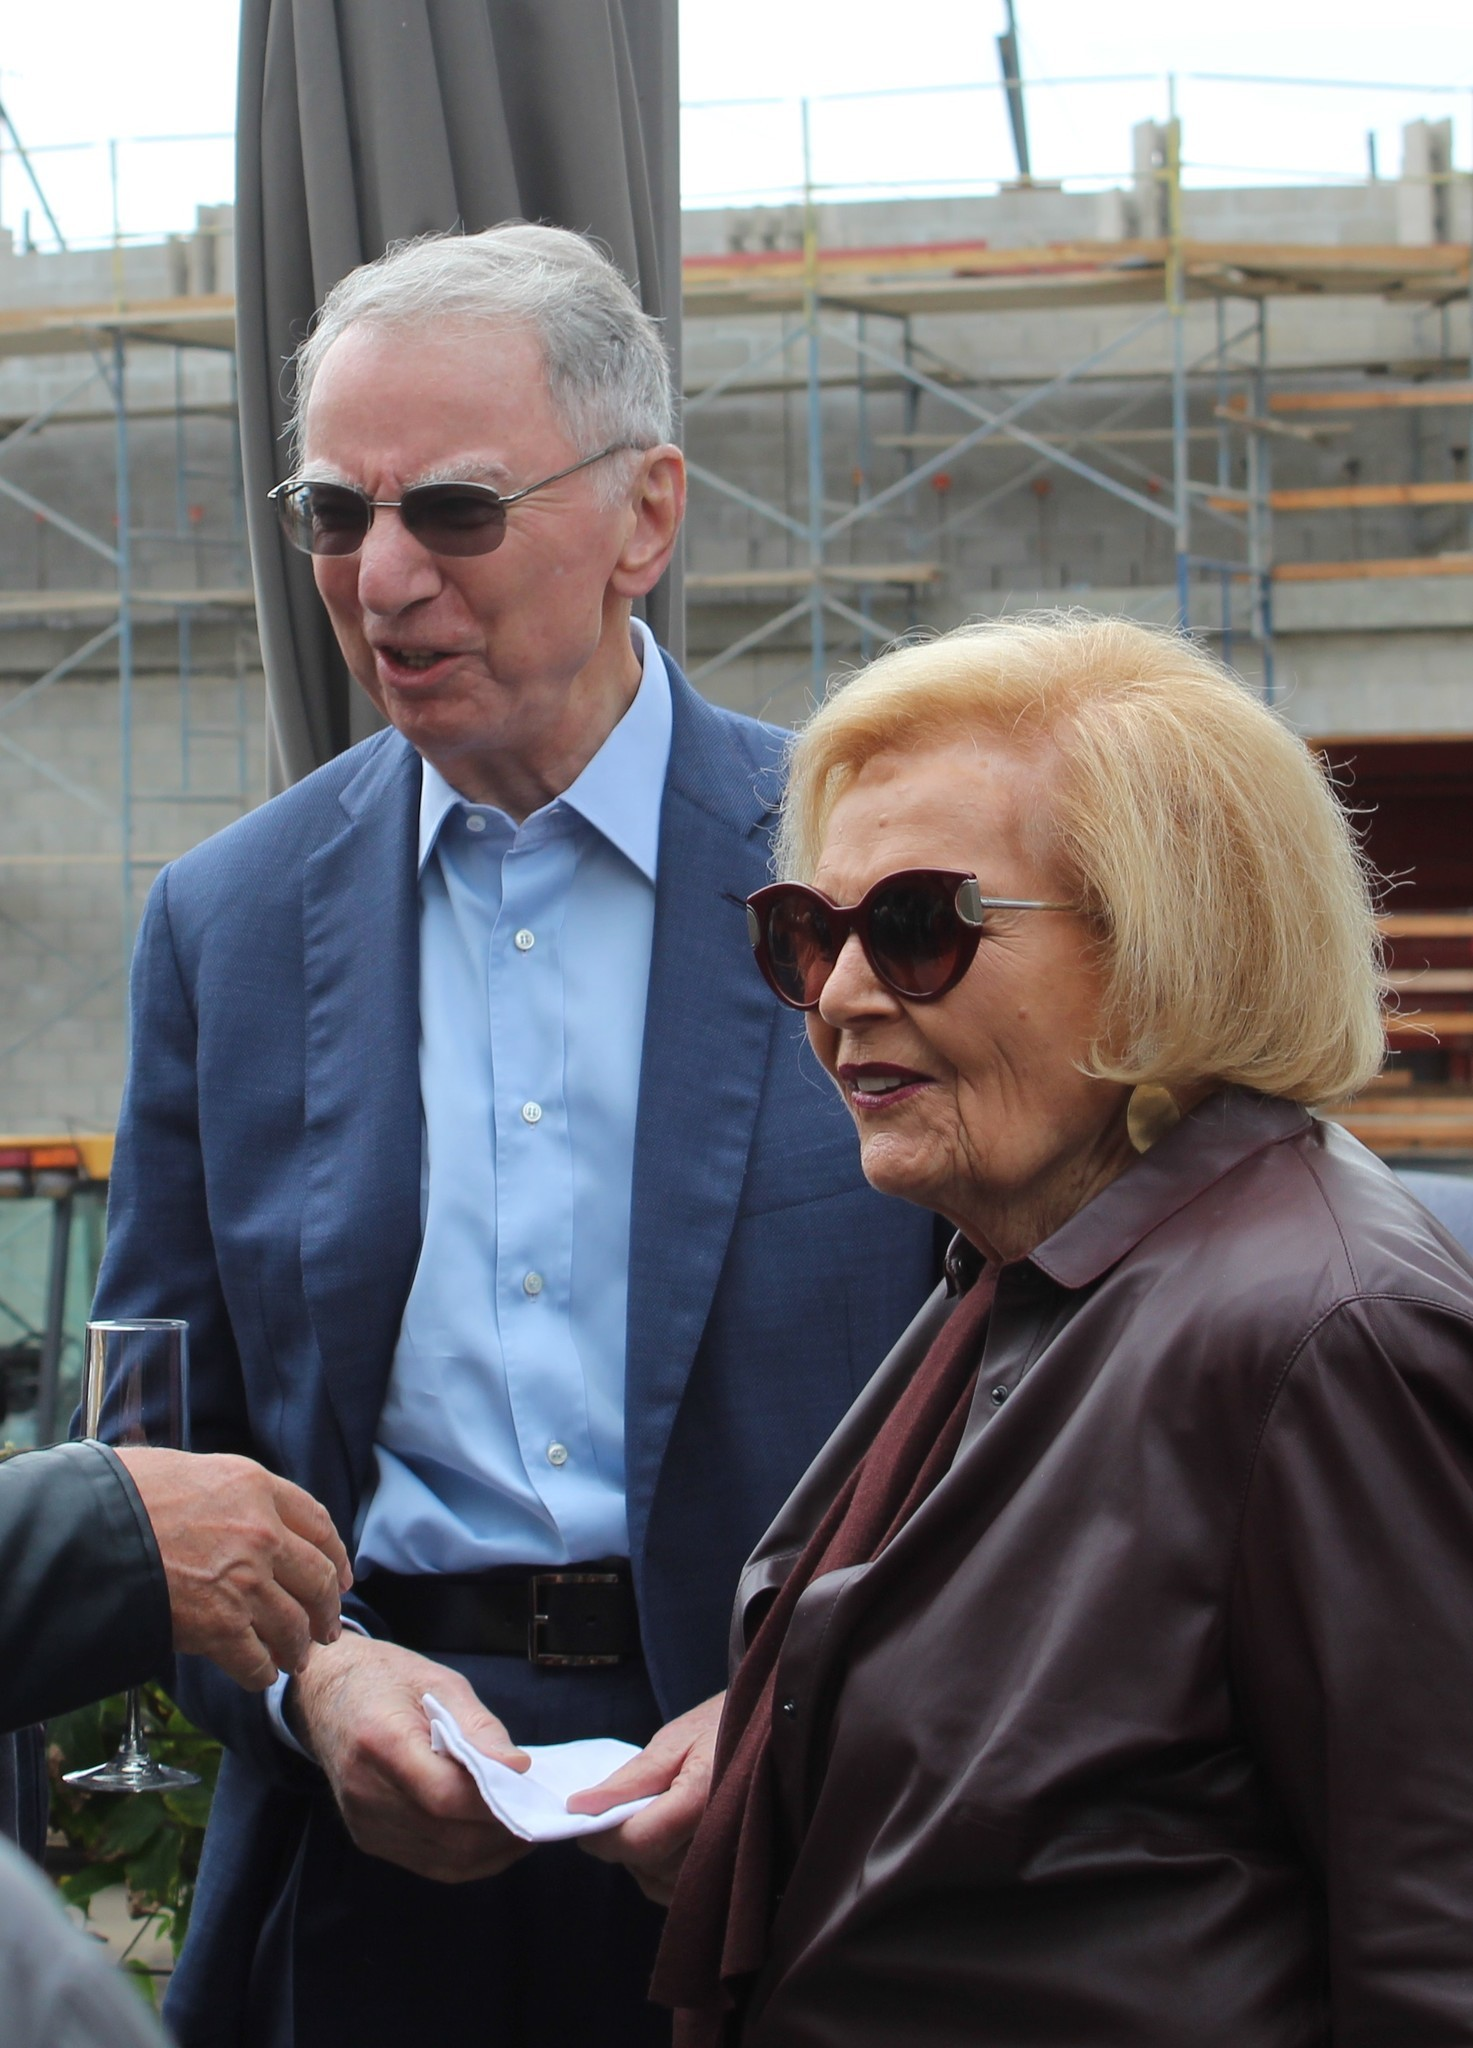 Philanthropists Irwin and Joan Jacobs chat with friends at The Conrad topping-off viewing party on the deck of The Lot movie theater.